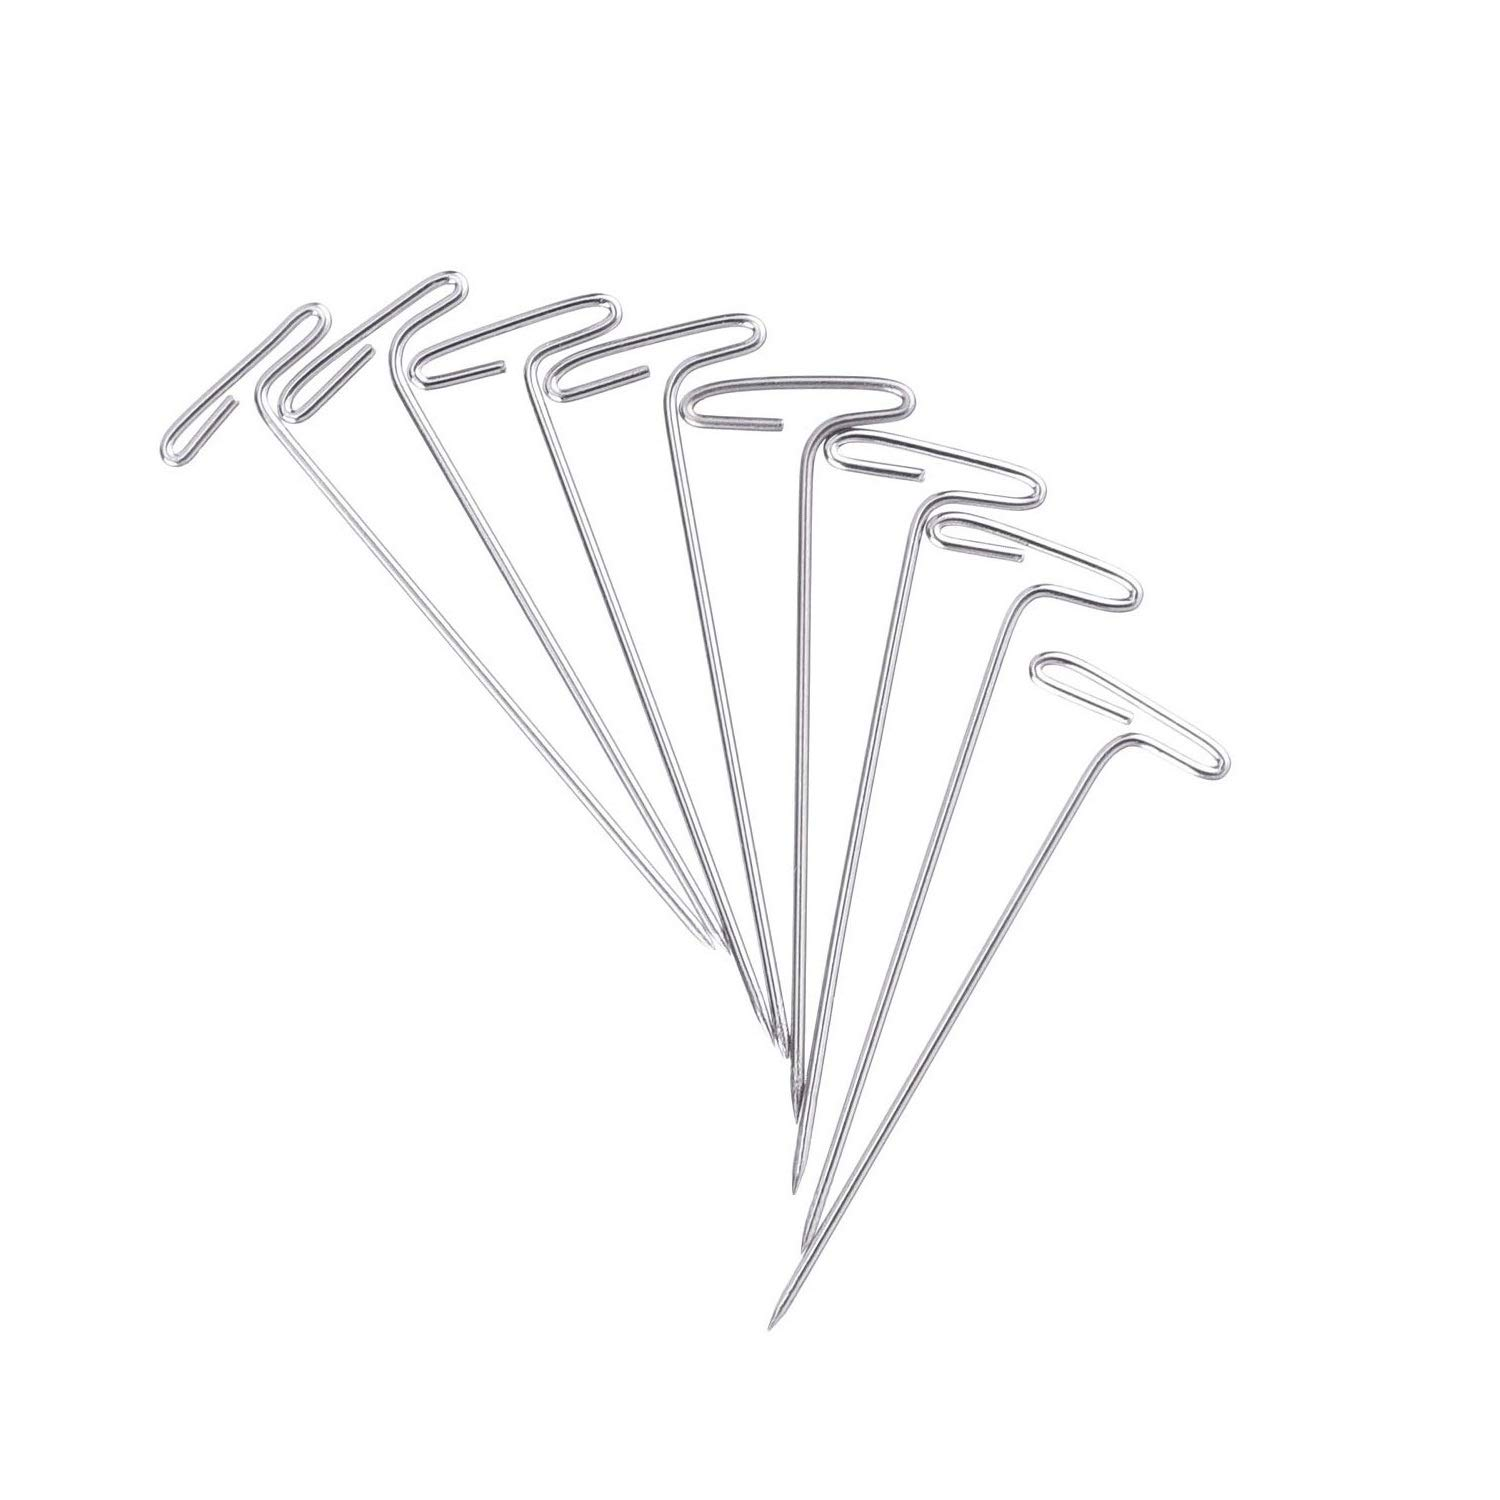 Zuoyou 150 Pieces Steel T-pins 2 Inch and 1-1//2 Inch for Knitting Modelling and Crafts